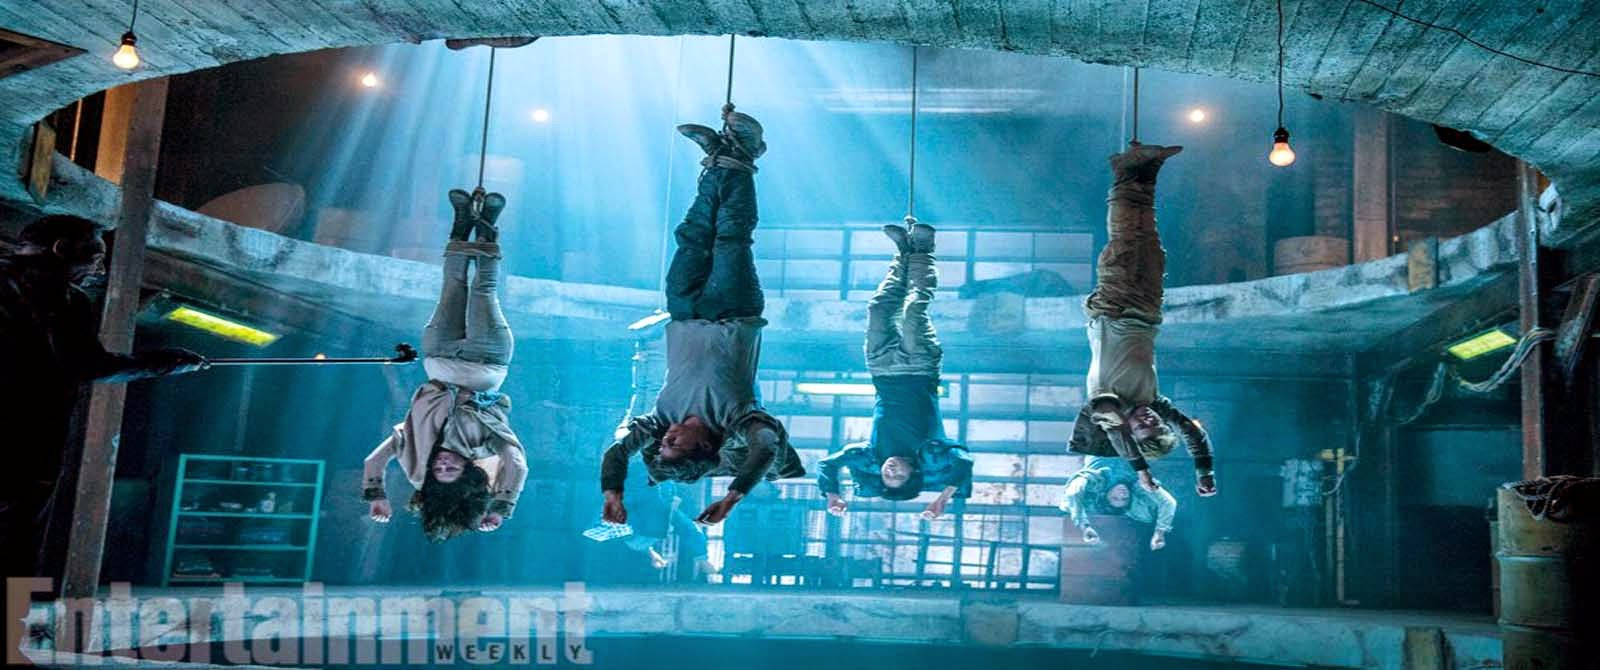 Download Maze Runner: The Scorch Trials Full Movie Free Hd